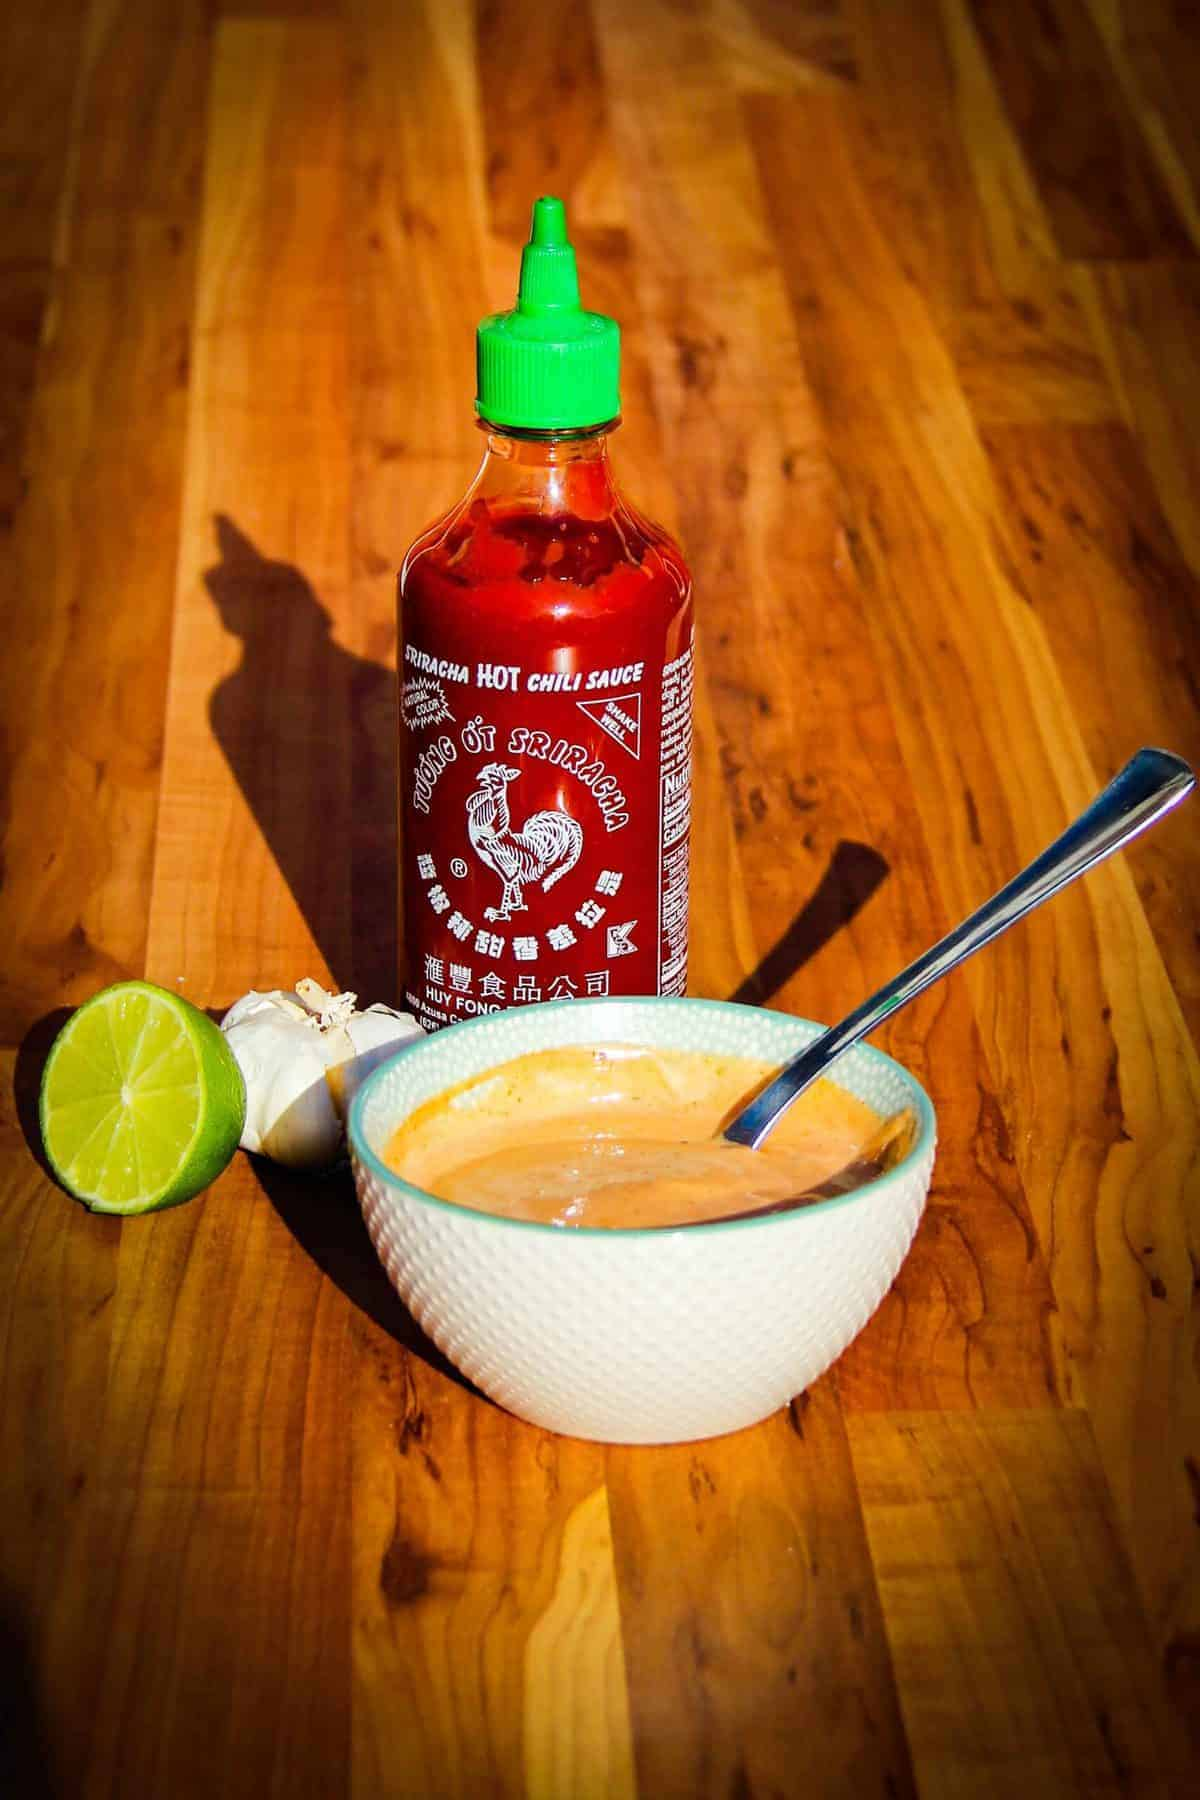 Spicy mayo in a bowl with a sriracha bottle, garlic and lime.